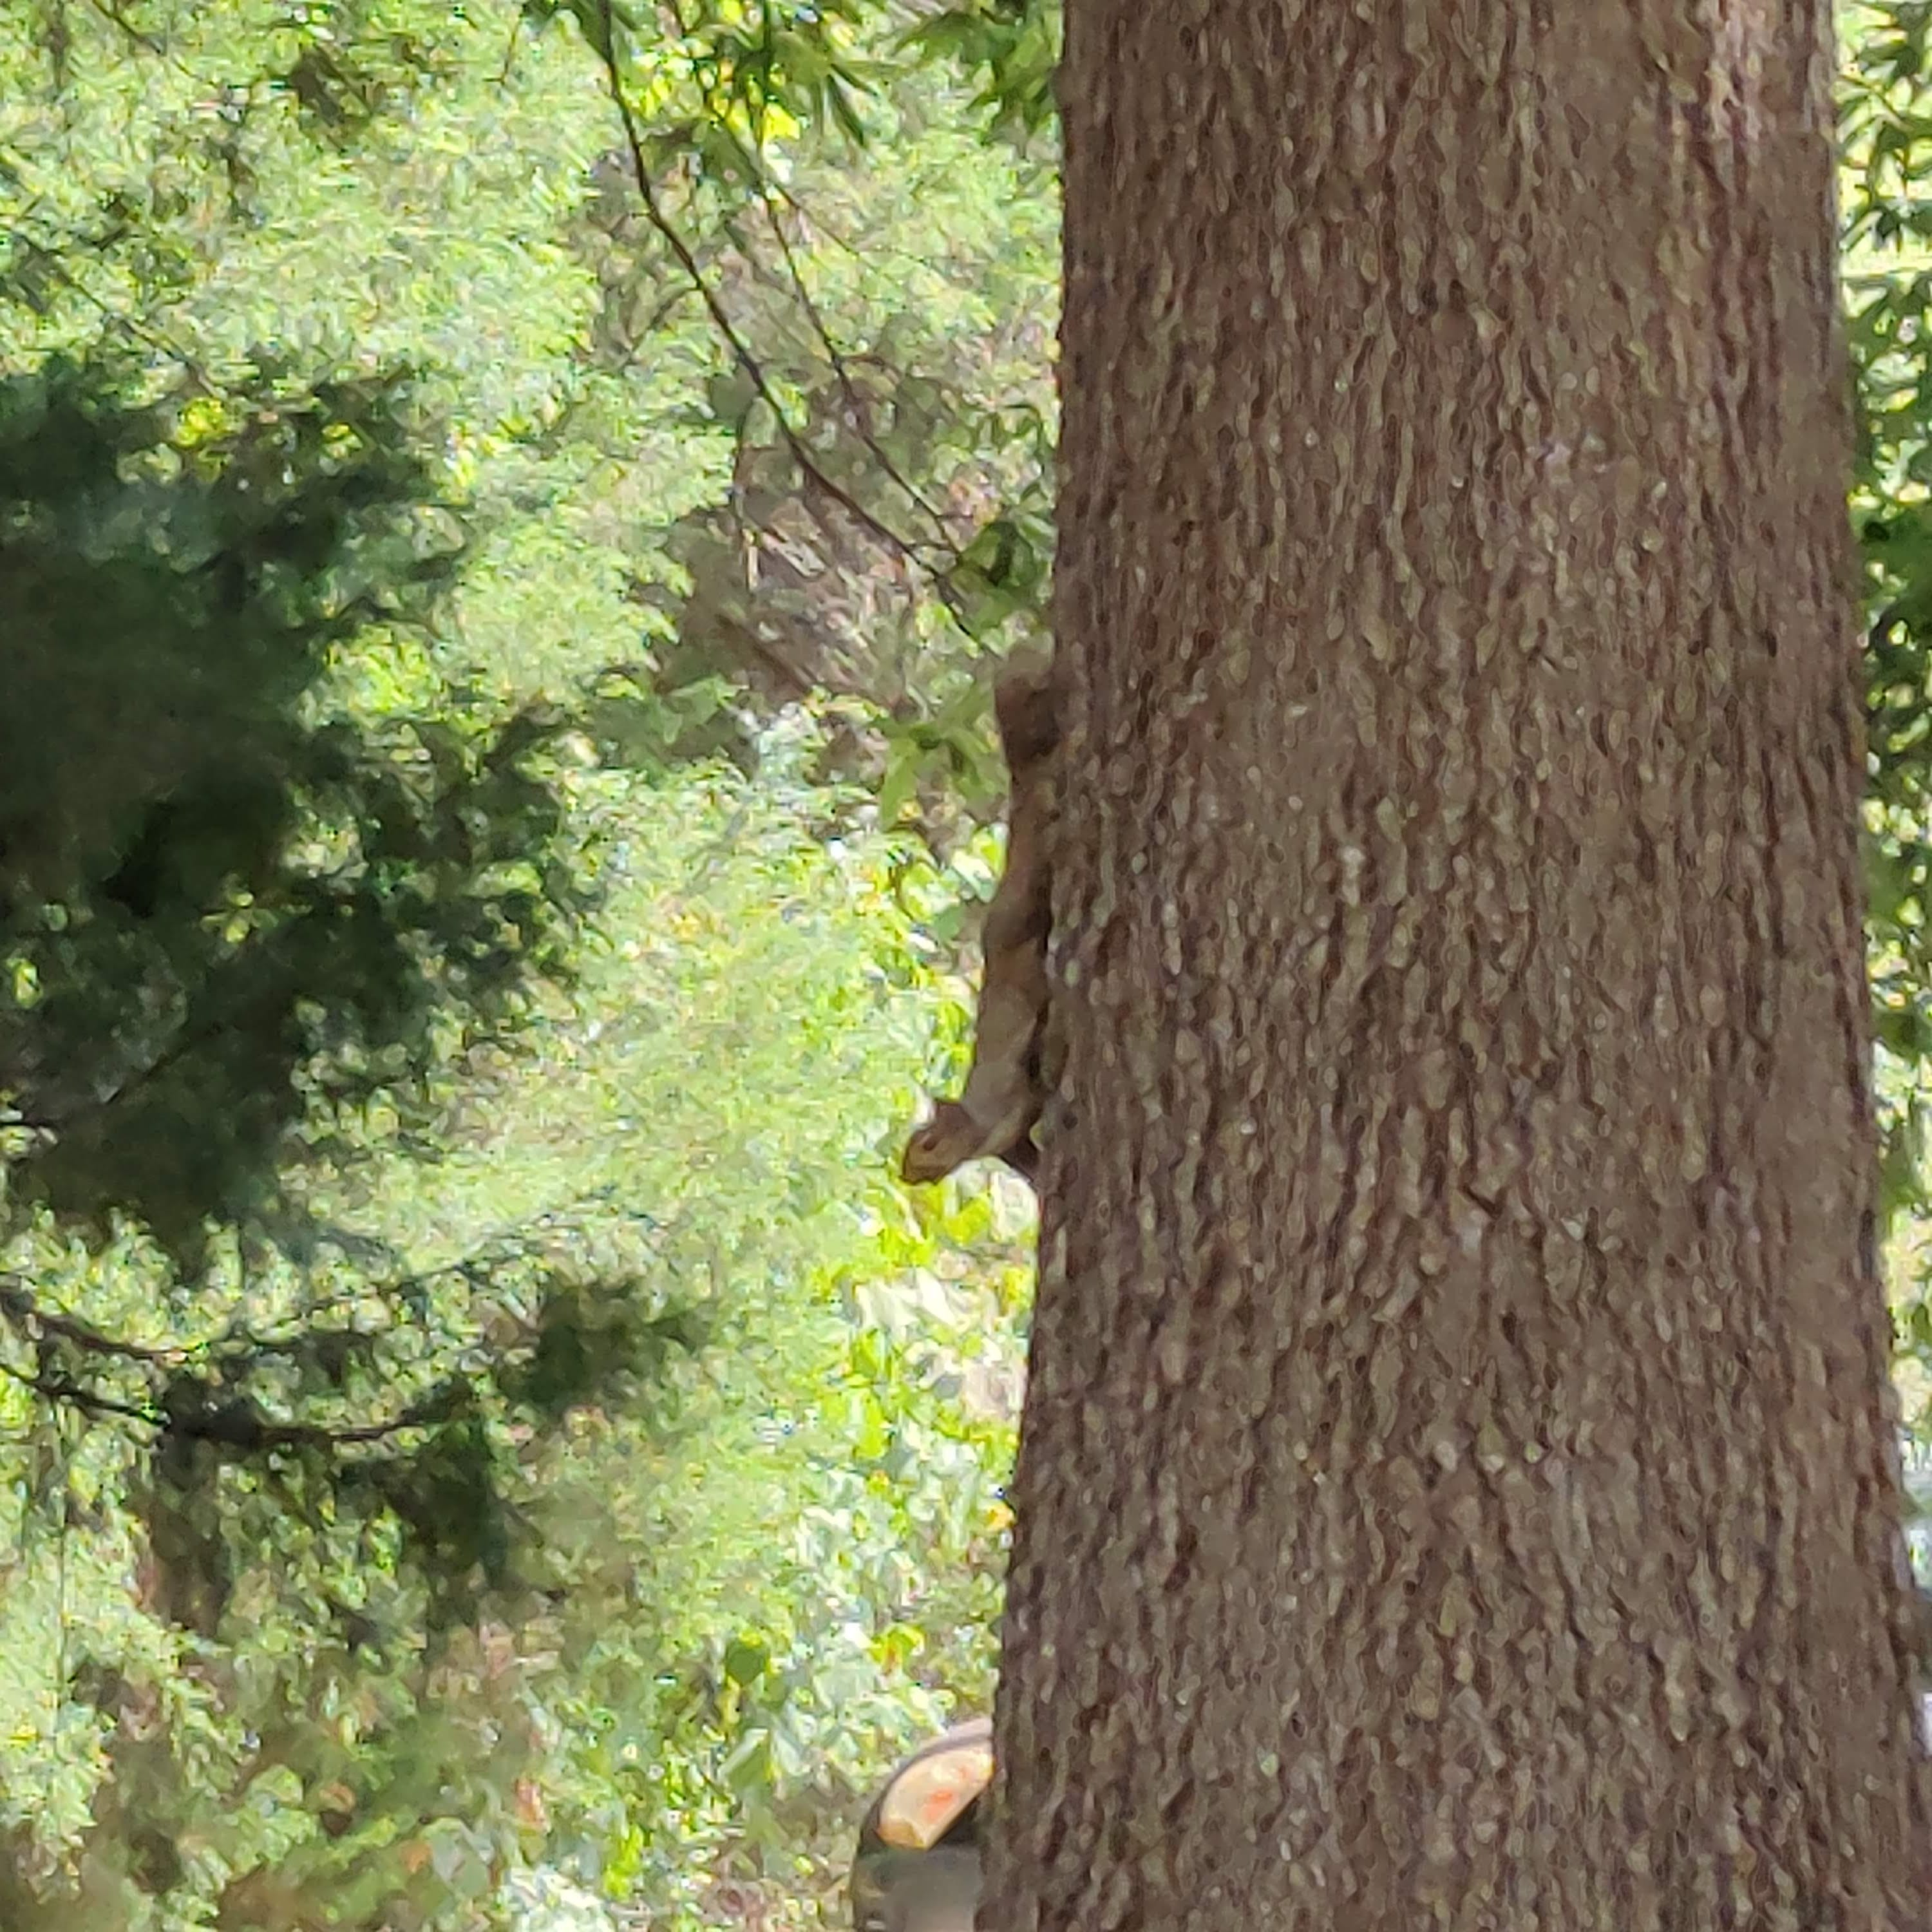 A squirrel climbing a tree infront of a forest